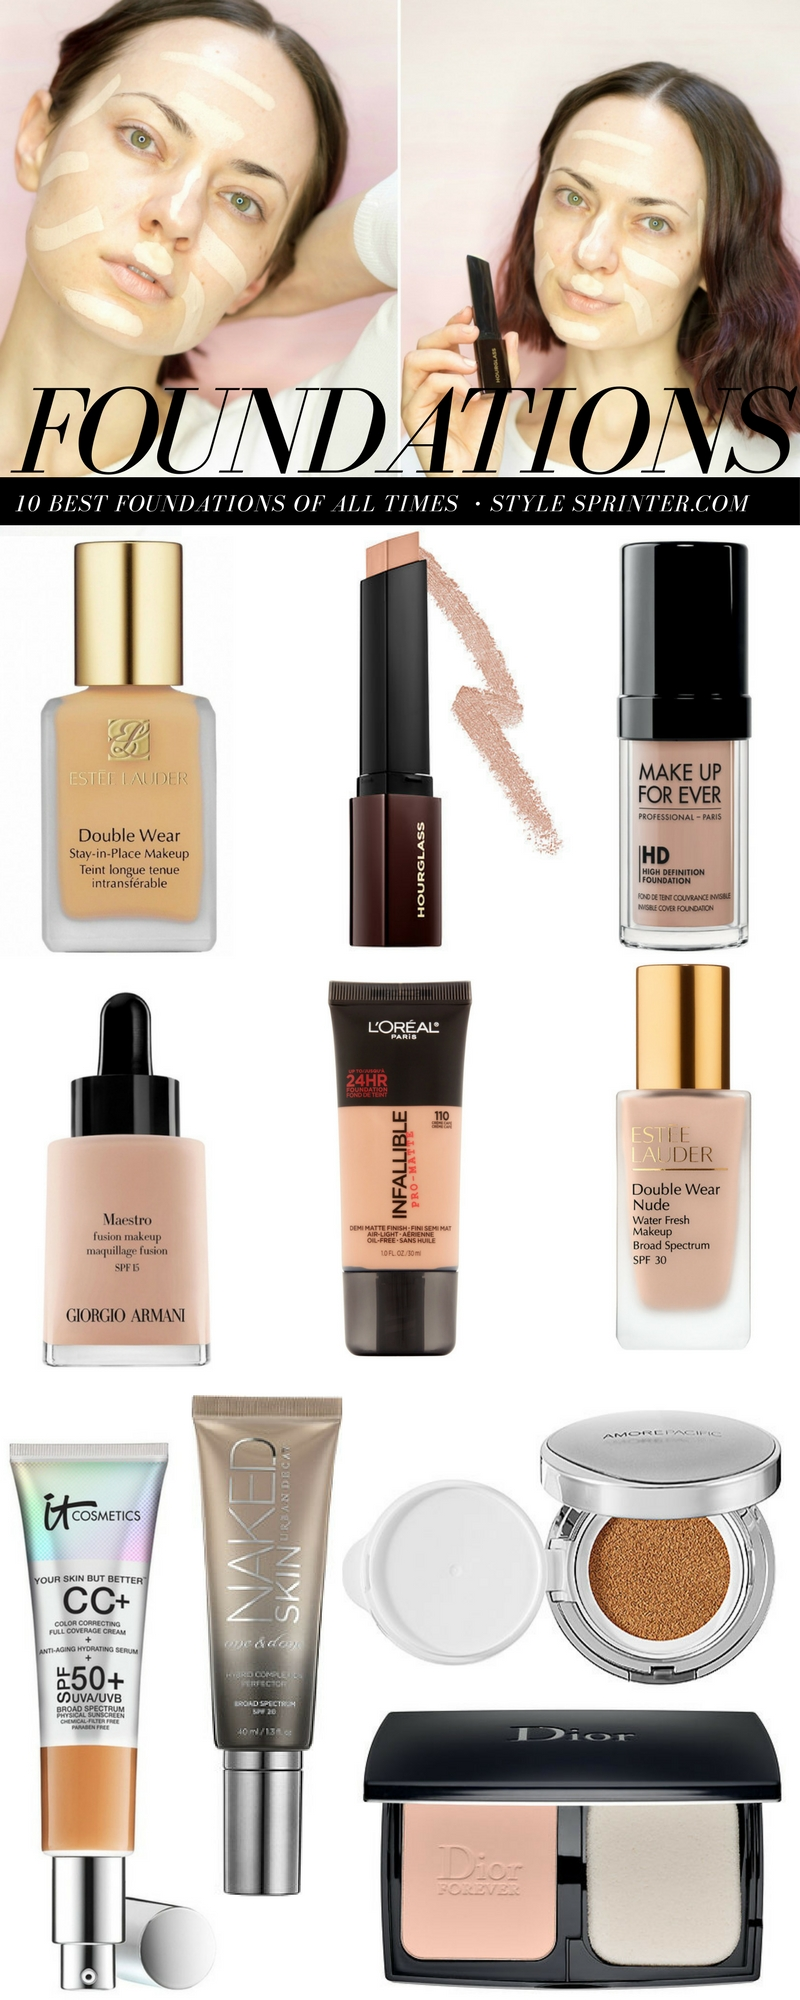 Top 10 Foundations of All Time